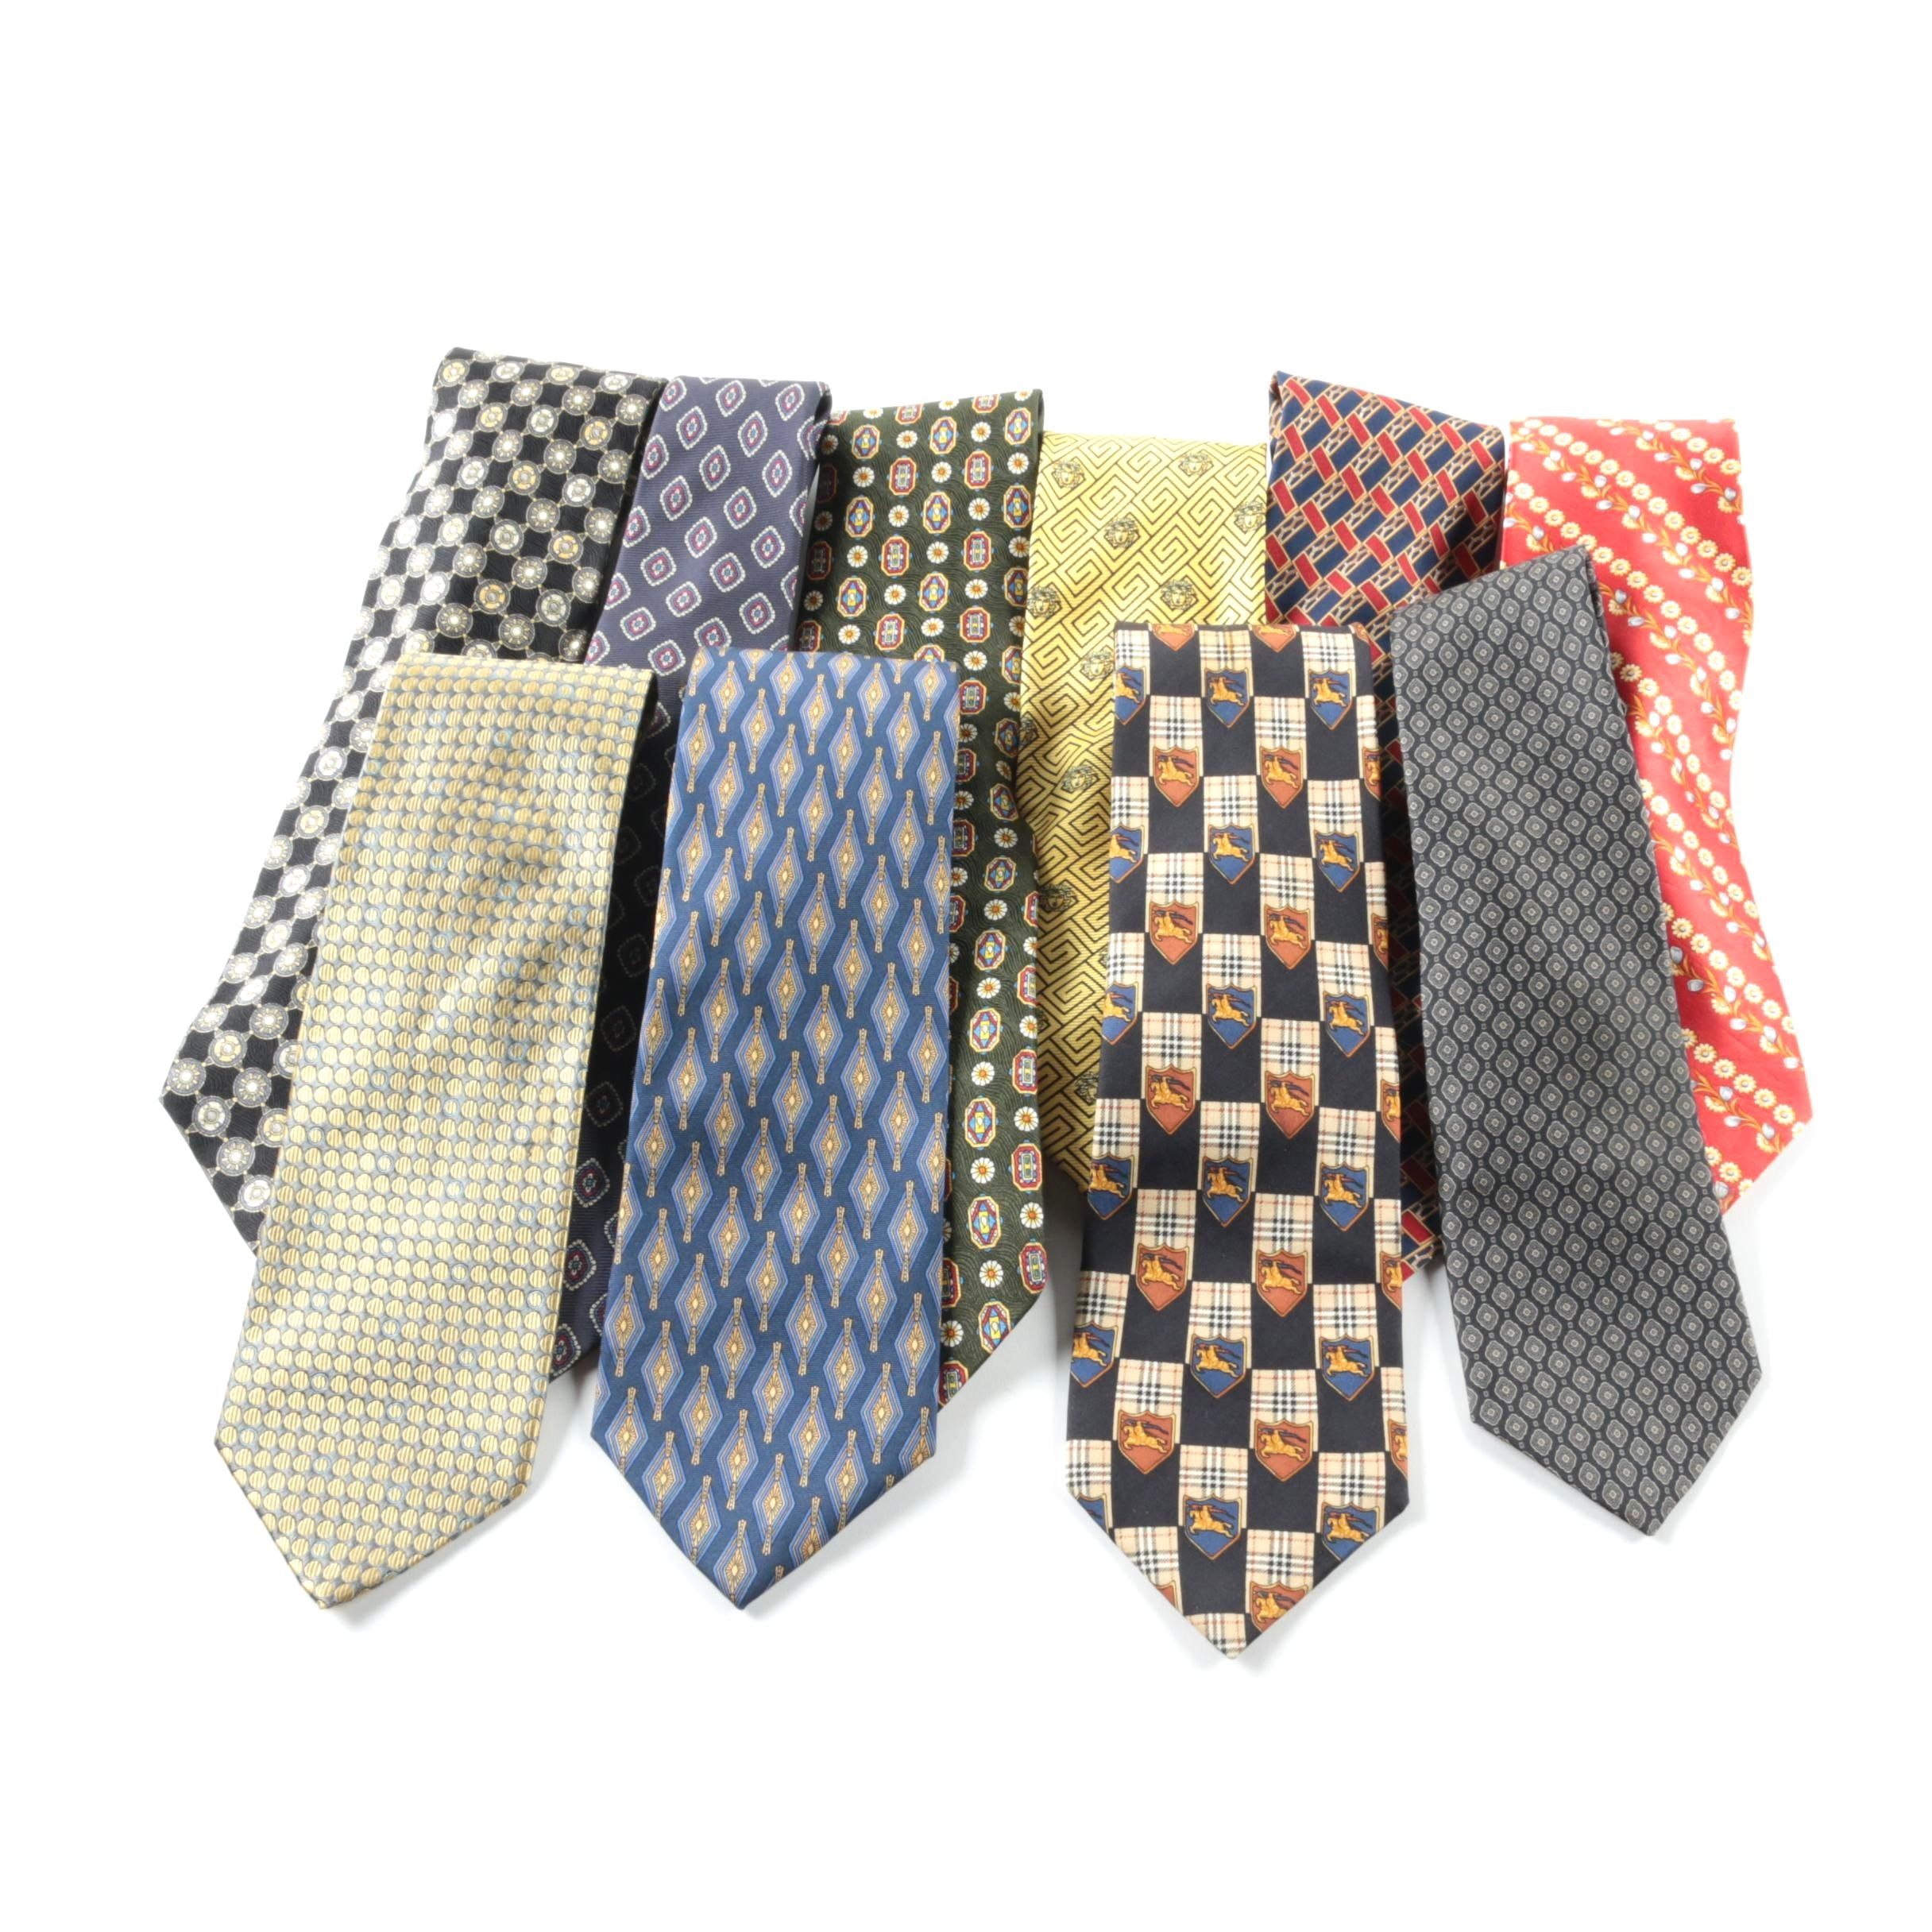 Men's Designer Silk Neckties Including Burberry and Oscar de la Renta